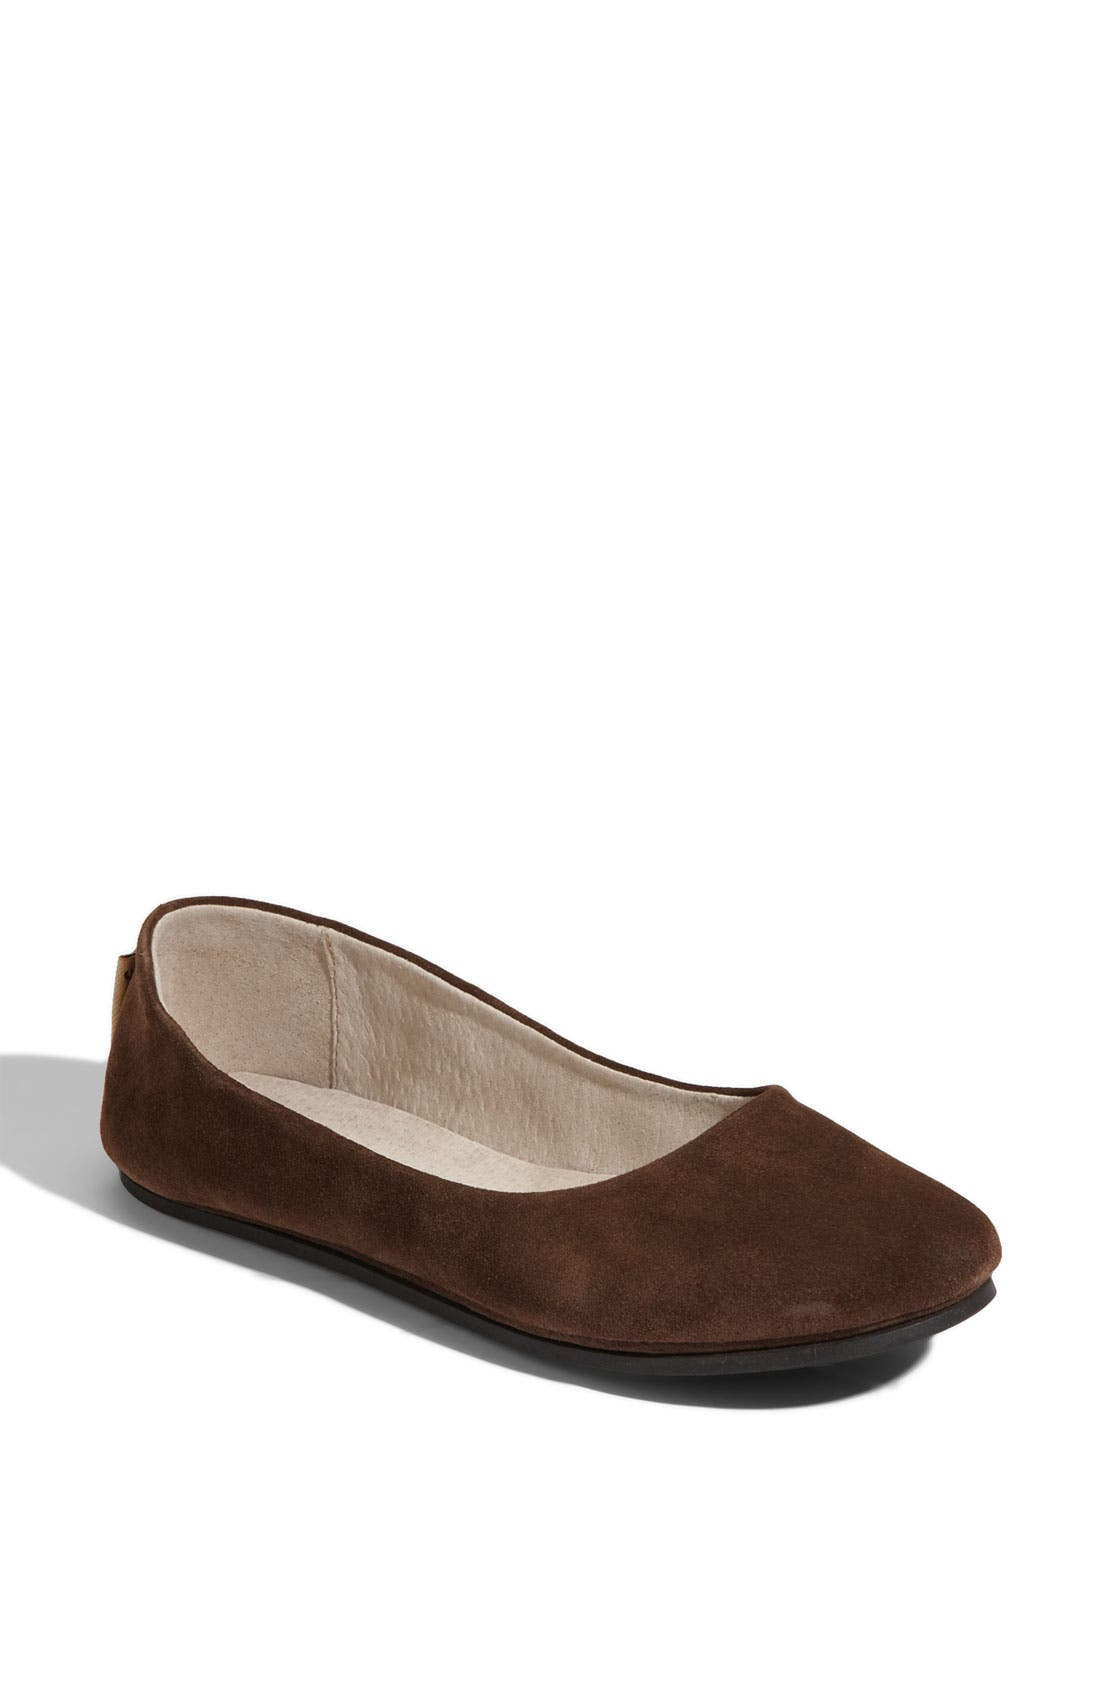 Main Image - French Sole 'Sloop' Flat